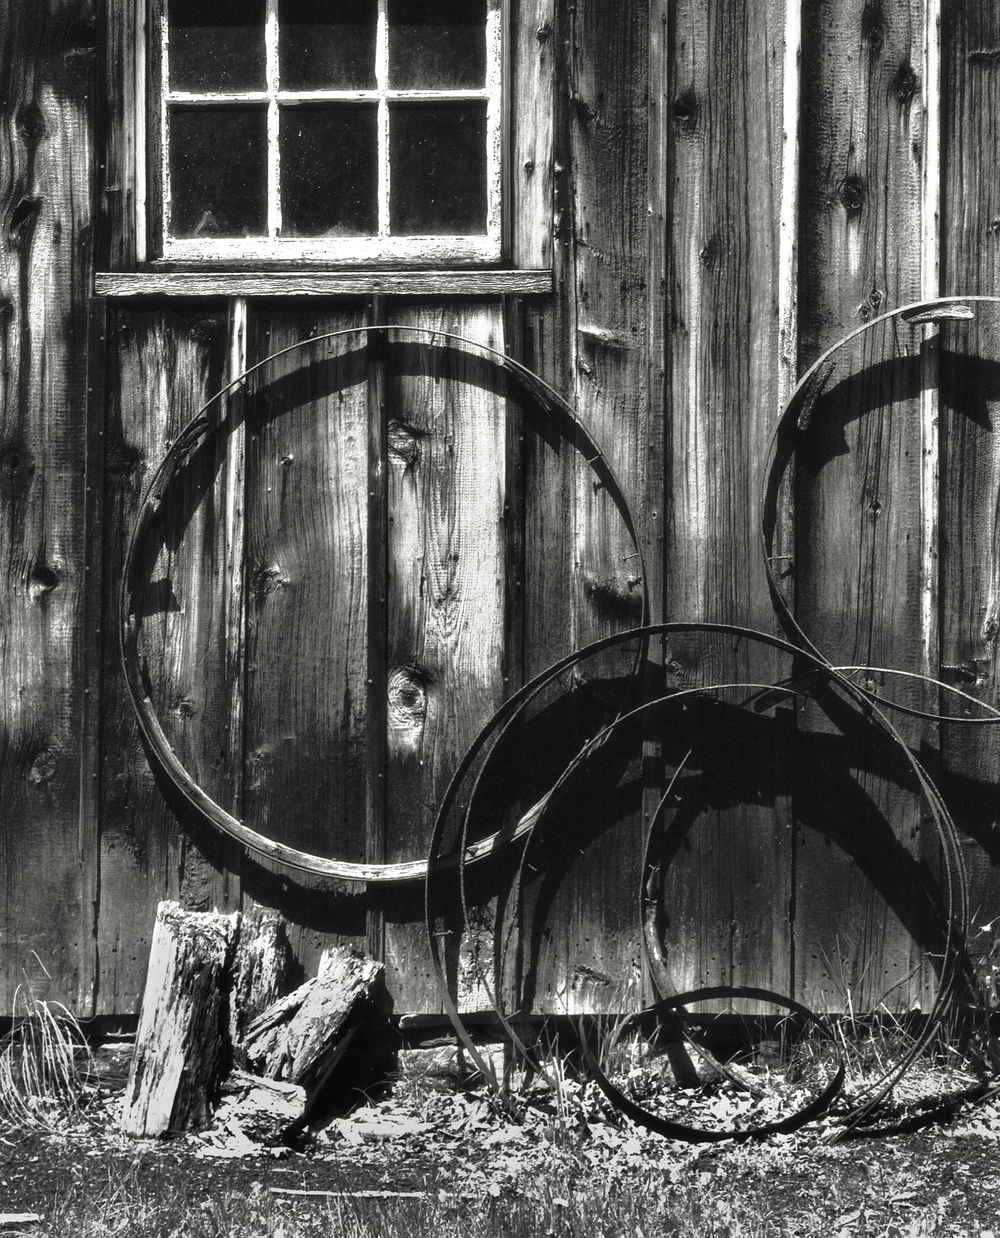 4x5_for_365_project_0133_Millbrook_blacksmith_shop.png